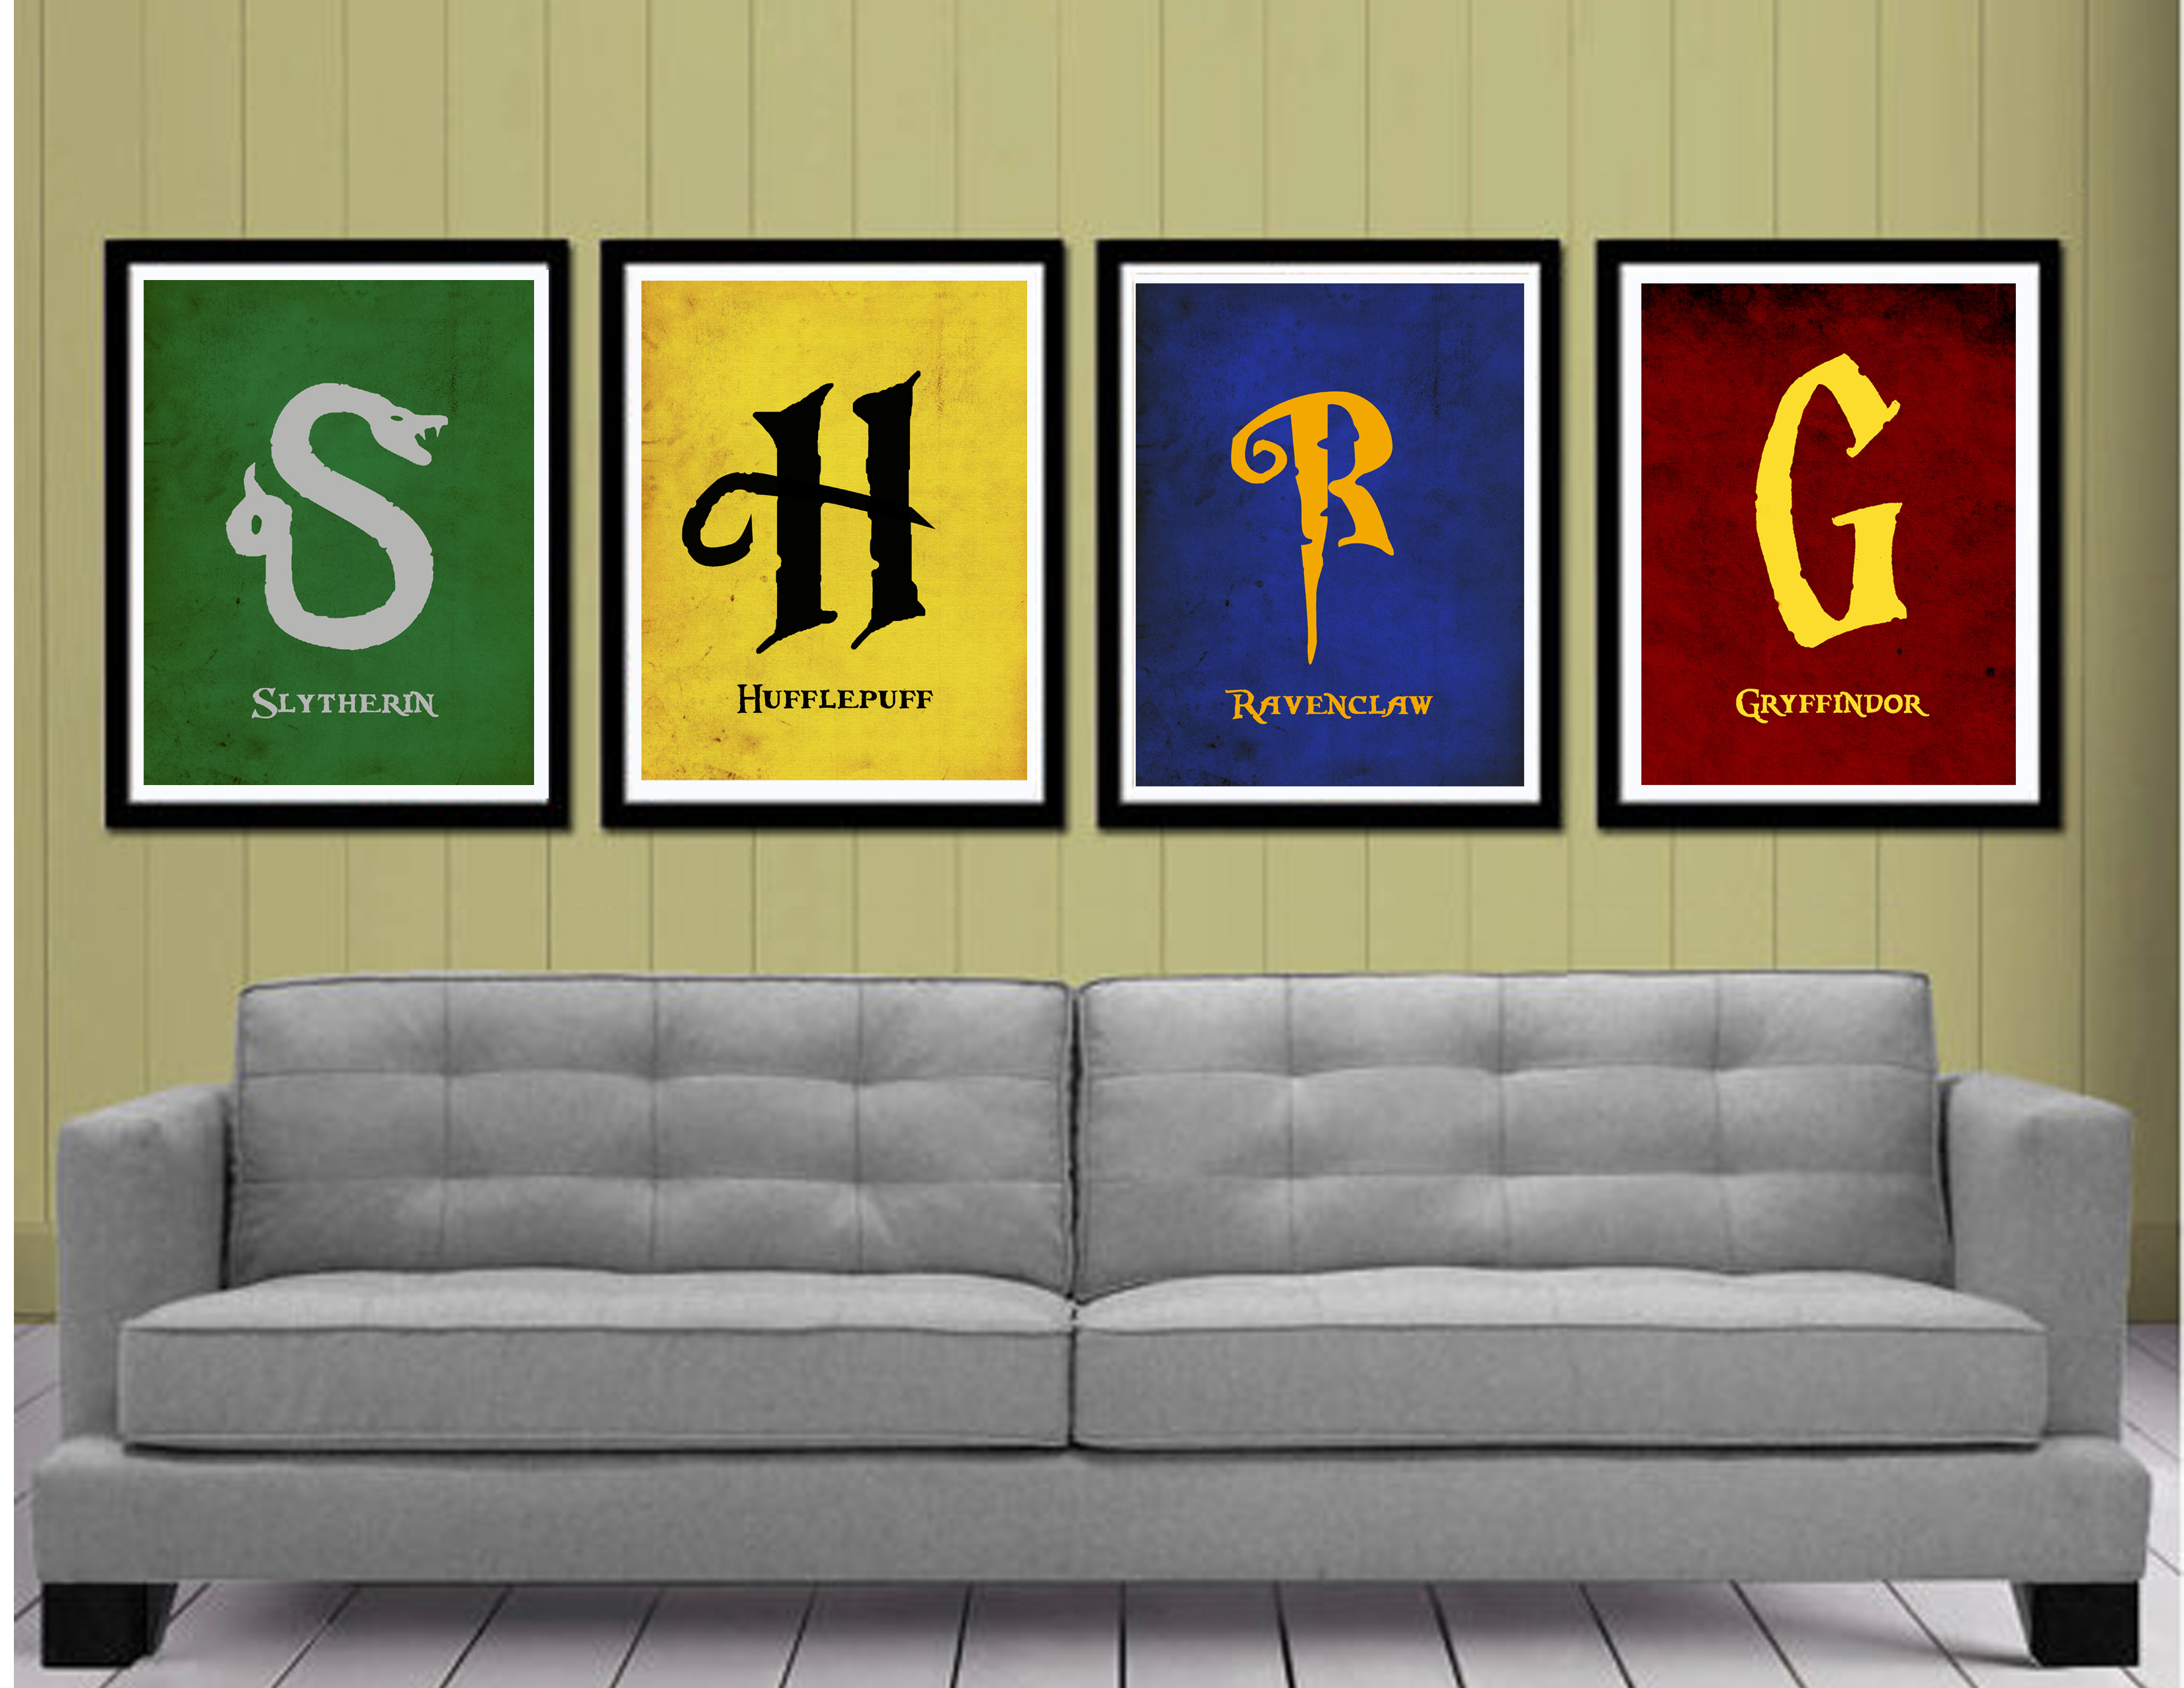 Harry potter houses minimalist posters 4 pack on storenvy for Minimalist house color